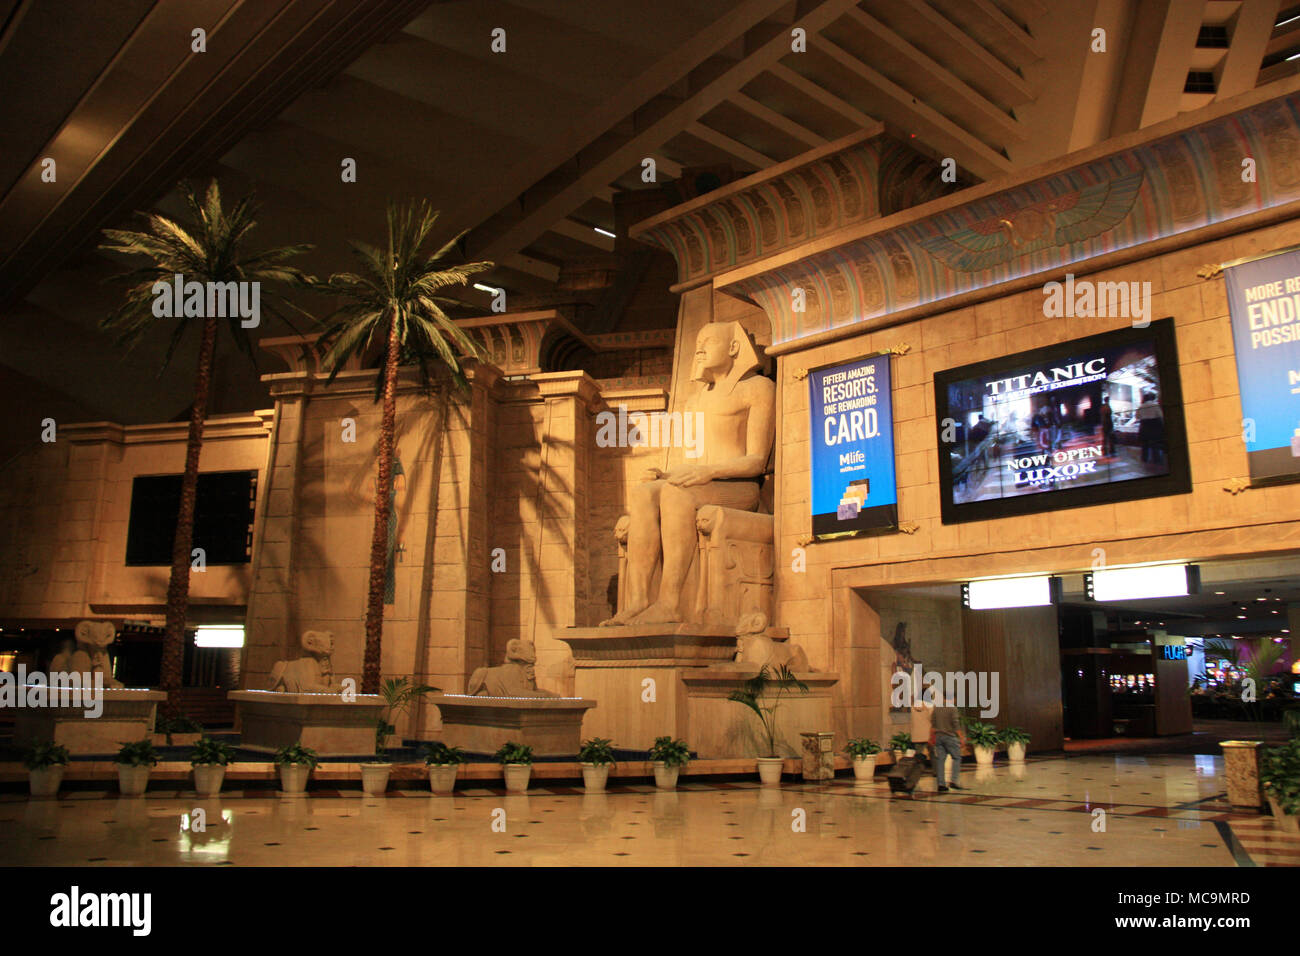 Interior View of the Luxor Las Vegas Hotel and Casino, showing the main entrance portal inside the pyramid, Las Vegas, NV, USA - Stock Image